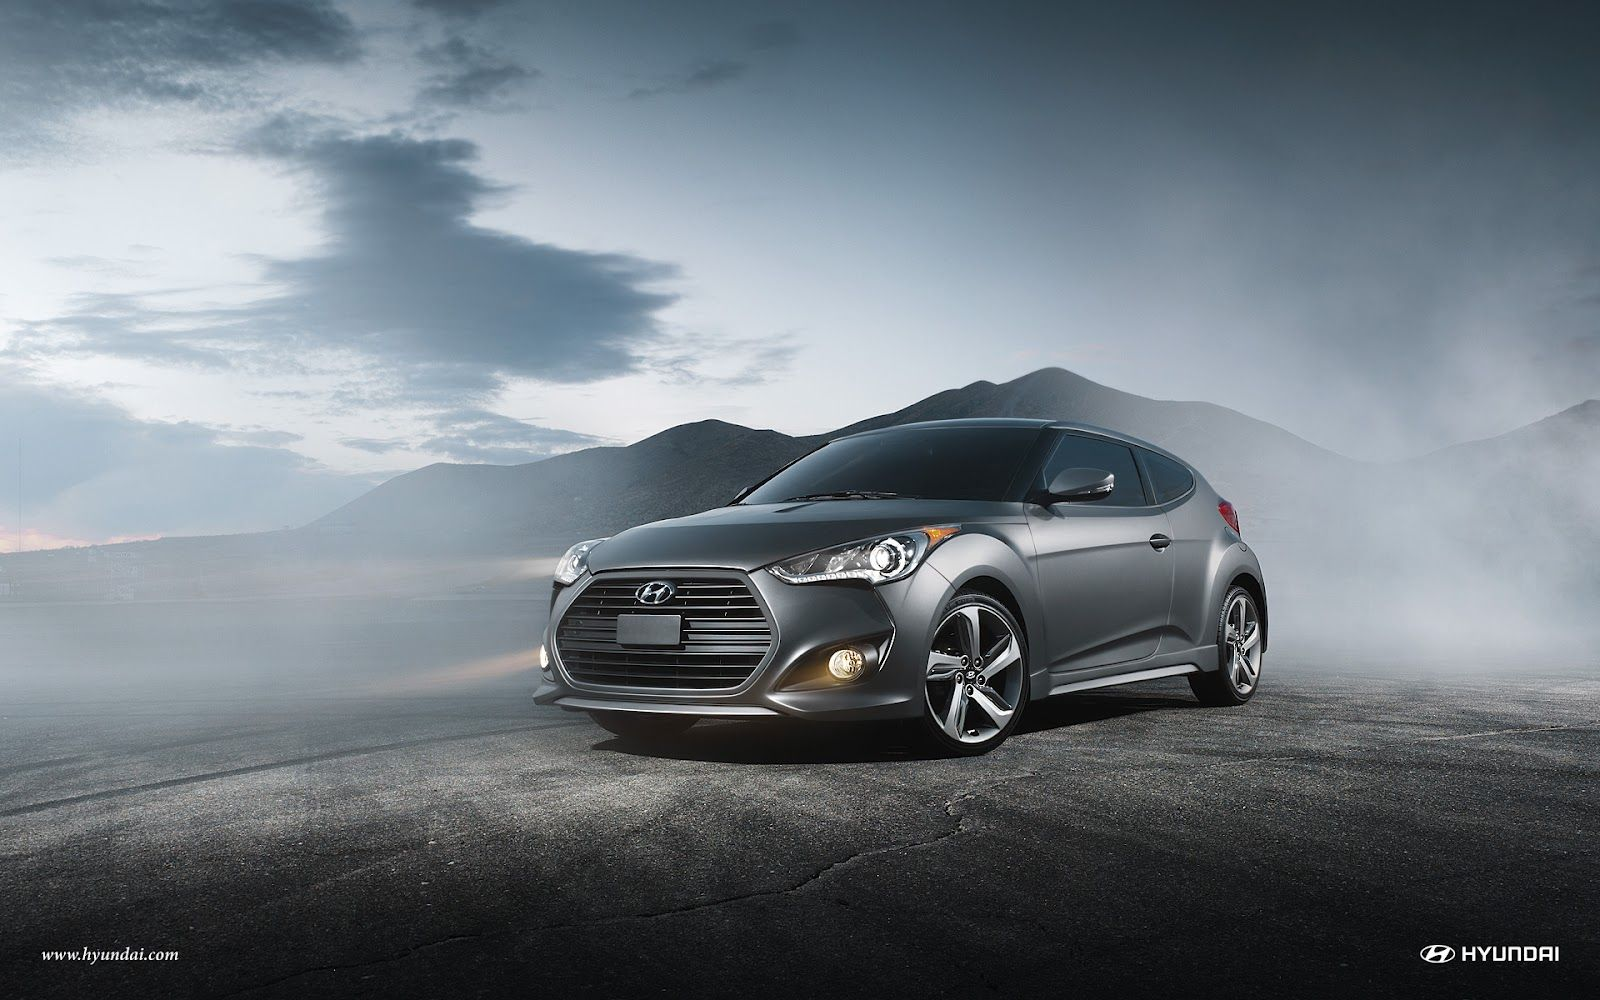 2015 Hyundai Veloster Turbo R Spec Wallpaper Hd Car Wallpapers 2017